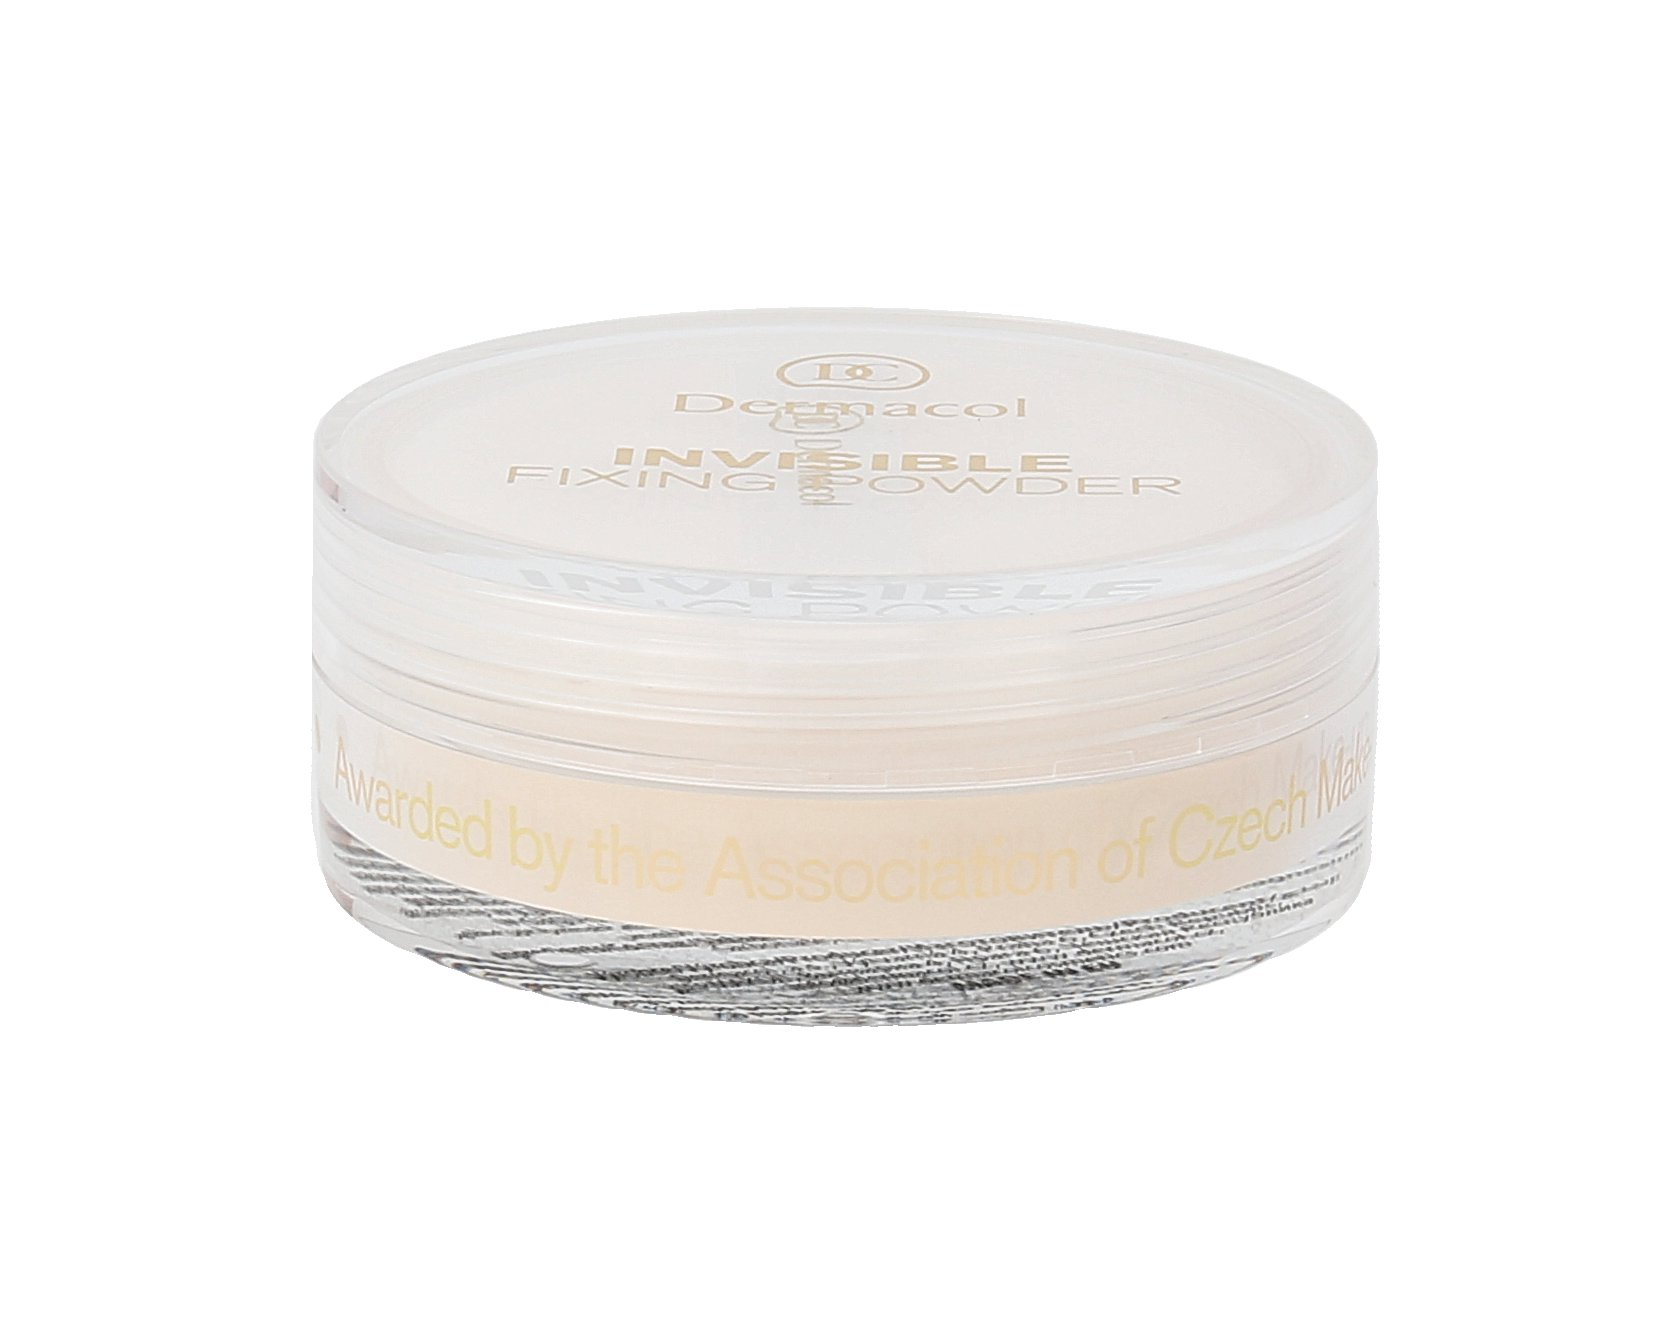 Dermacol Invisible Fixing Powder (W)